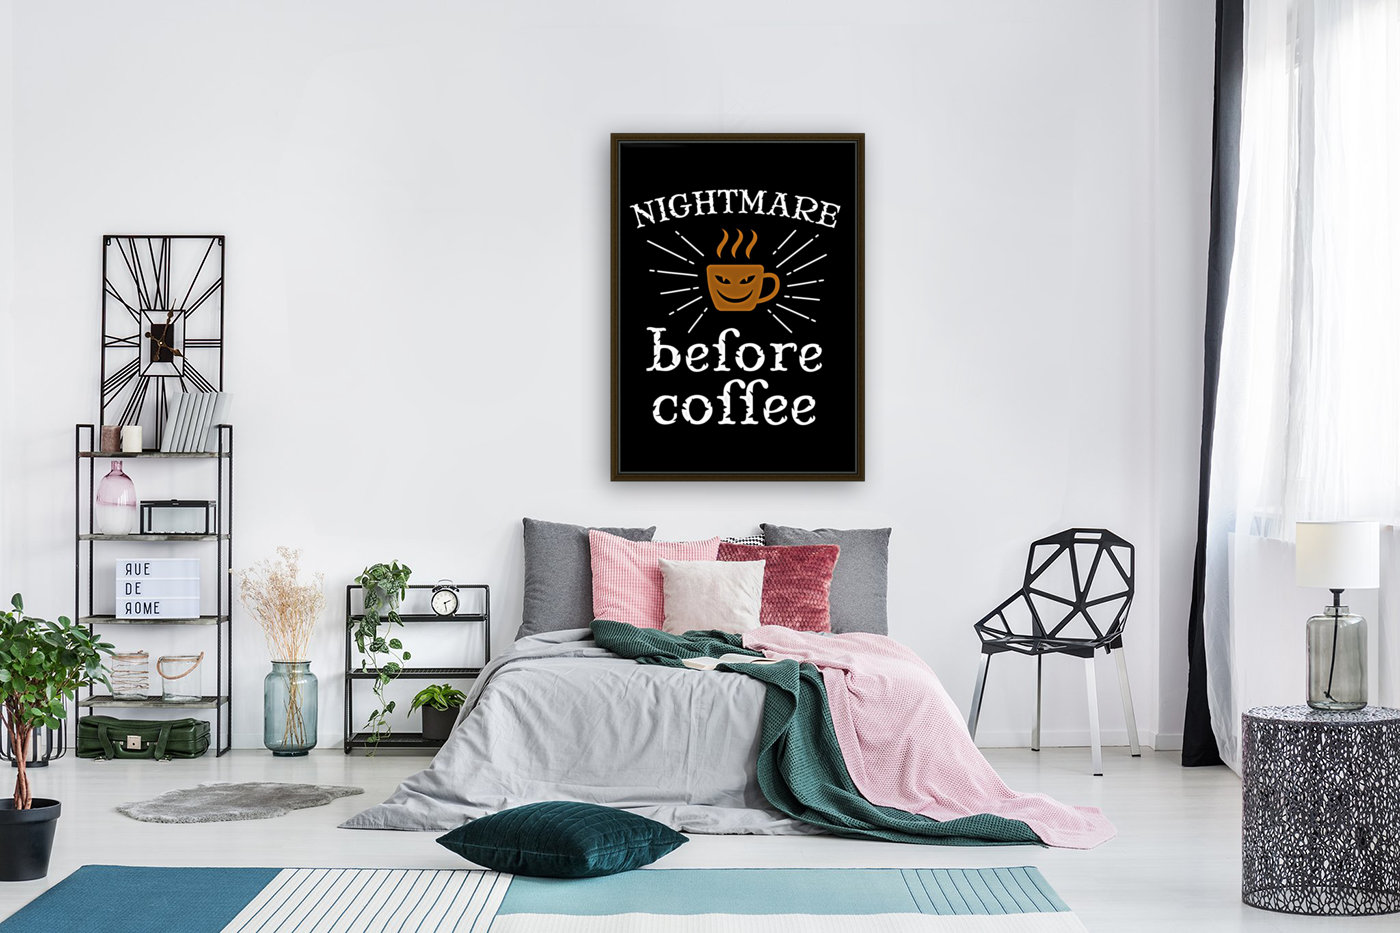 Nightmare Before Coffee with Floating Frame